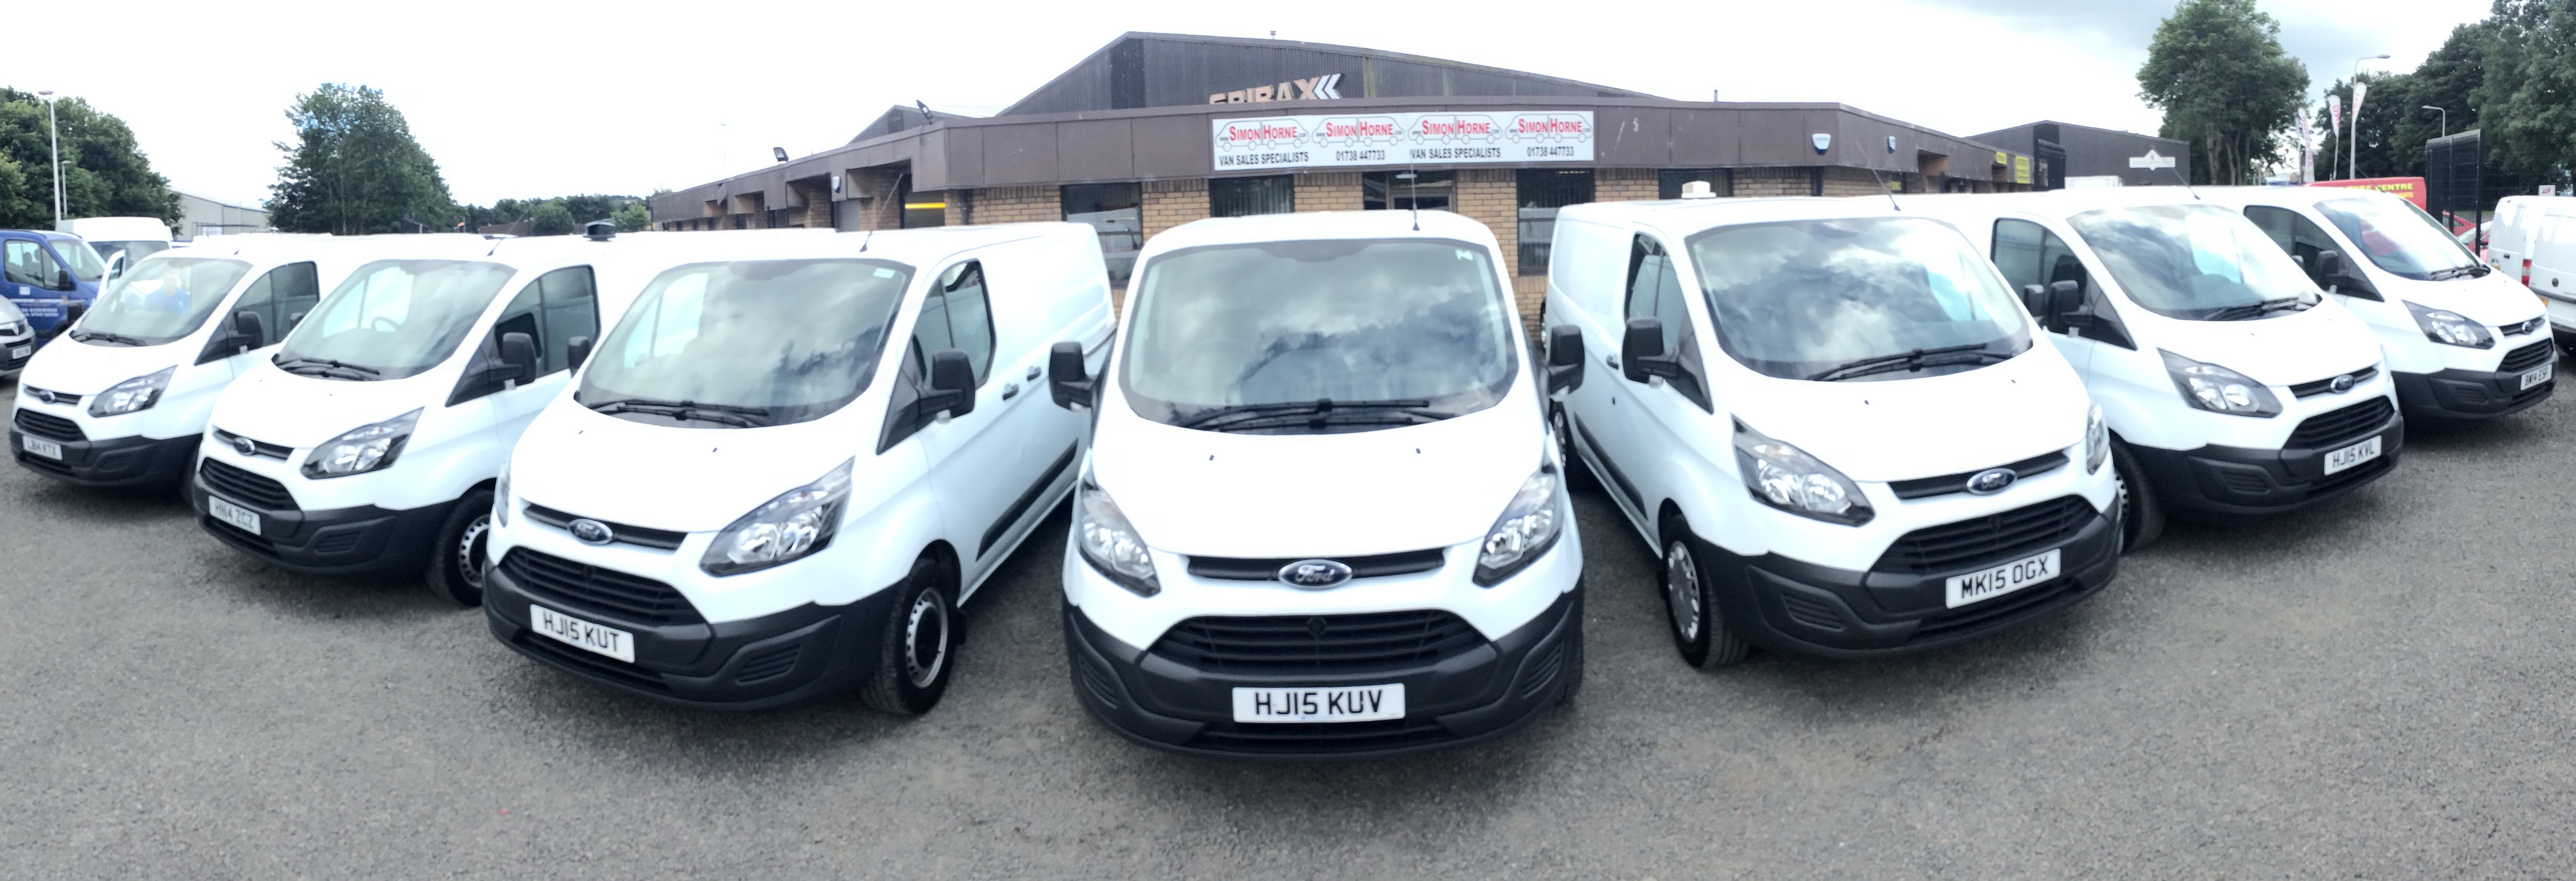 Car for Sale Scotland Beautiful Used Vans for Sale Perth Tayside In Scotland